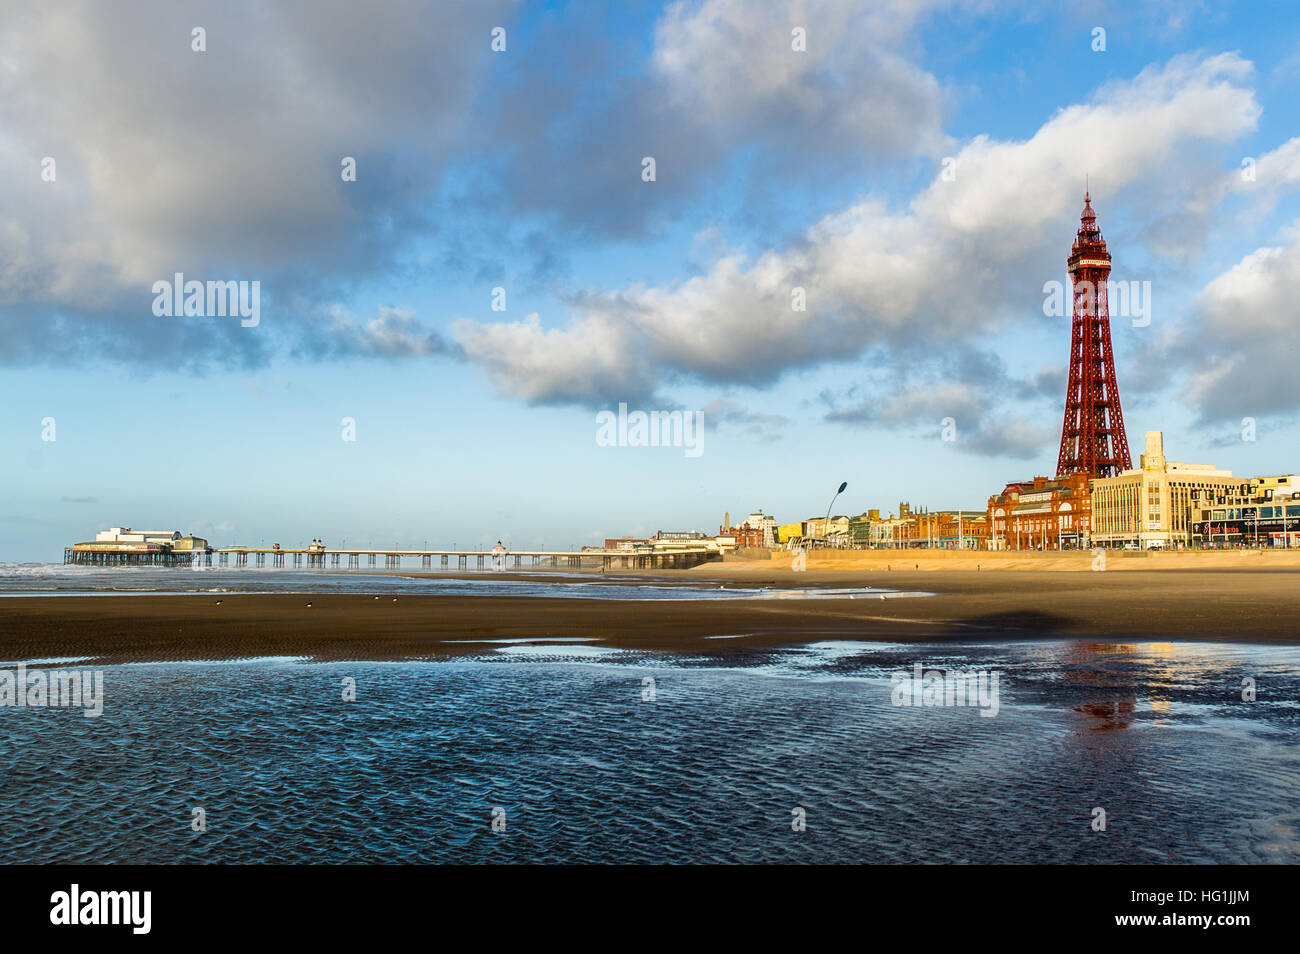 Blackpool Tower, North Pier and beach in Blackpool, Lancashire, UK with copy space. - Stock Image